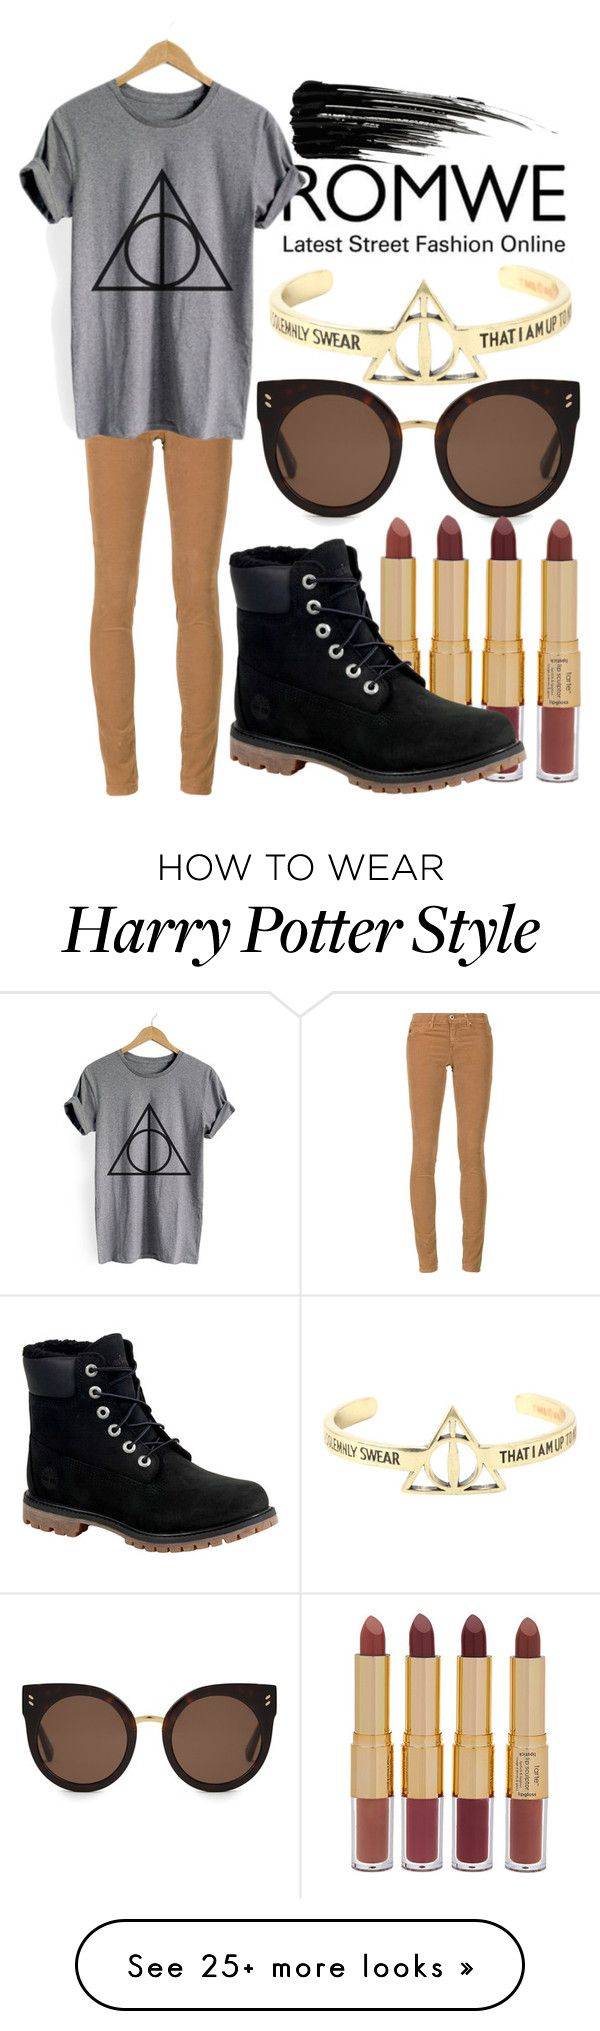 """""""ROMWE - Heather Grey Geometric Print T-shirt"""" by chezqah-agnir on Polyvore featuring STELLA McCARTNEY, tarte, AG Adriano Goldschmied, Warner Bros., Timberland and Urban Decay"""